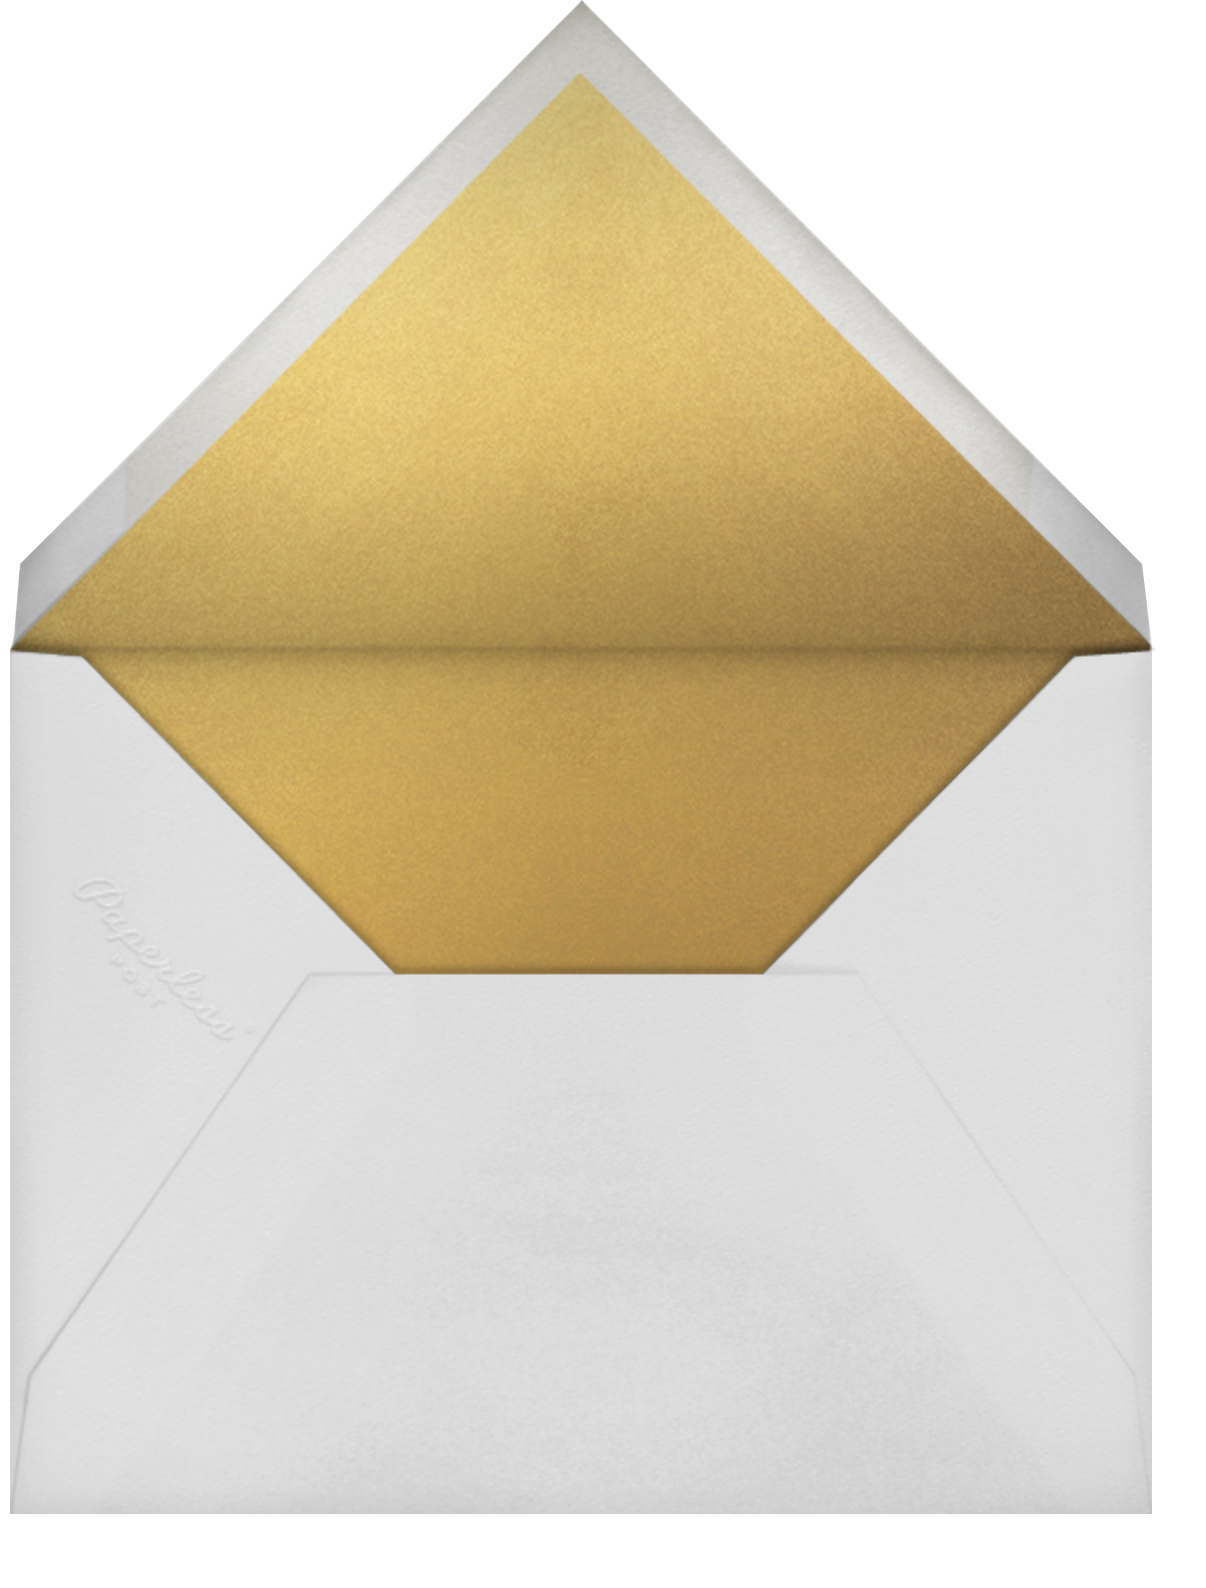 Deanei - Paperless Post - Virtual parties - envelope back